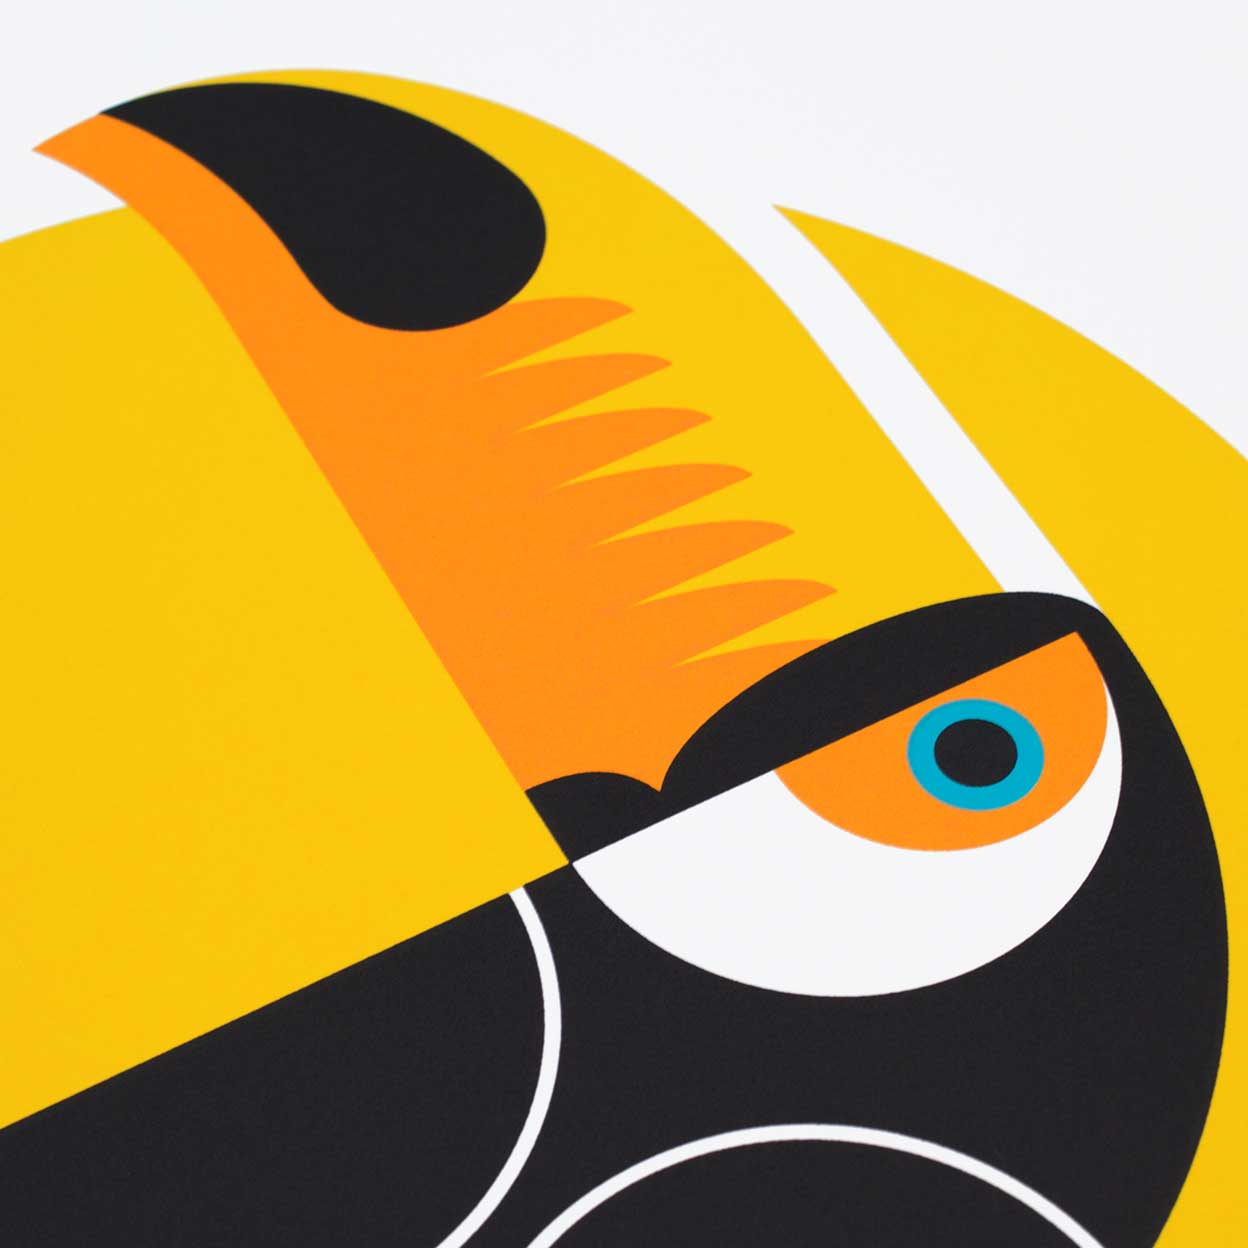 Toucan Screen Screen Print by Dan Forster created for The Lost Fox